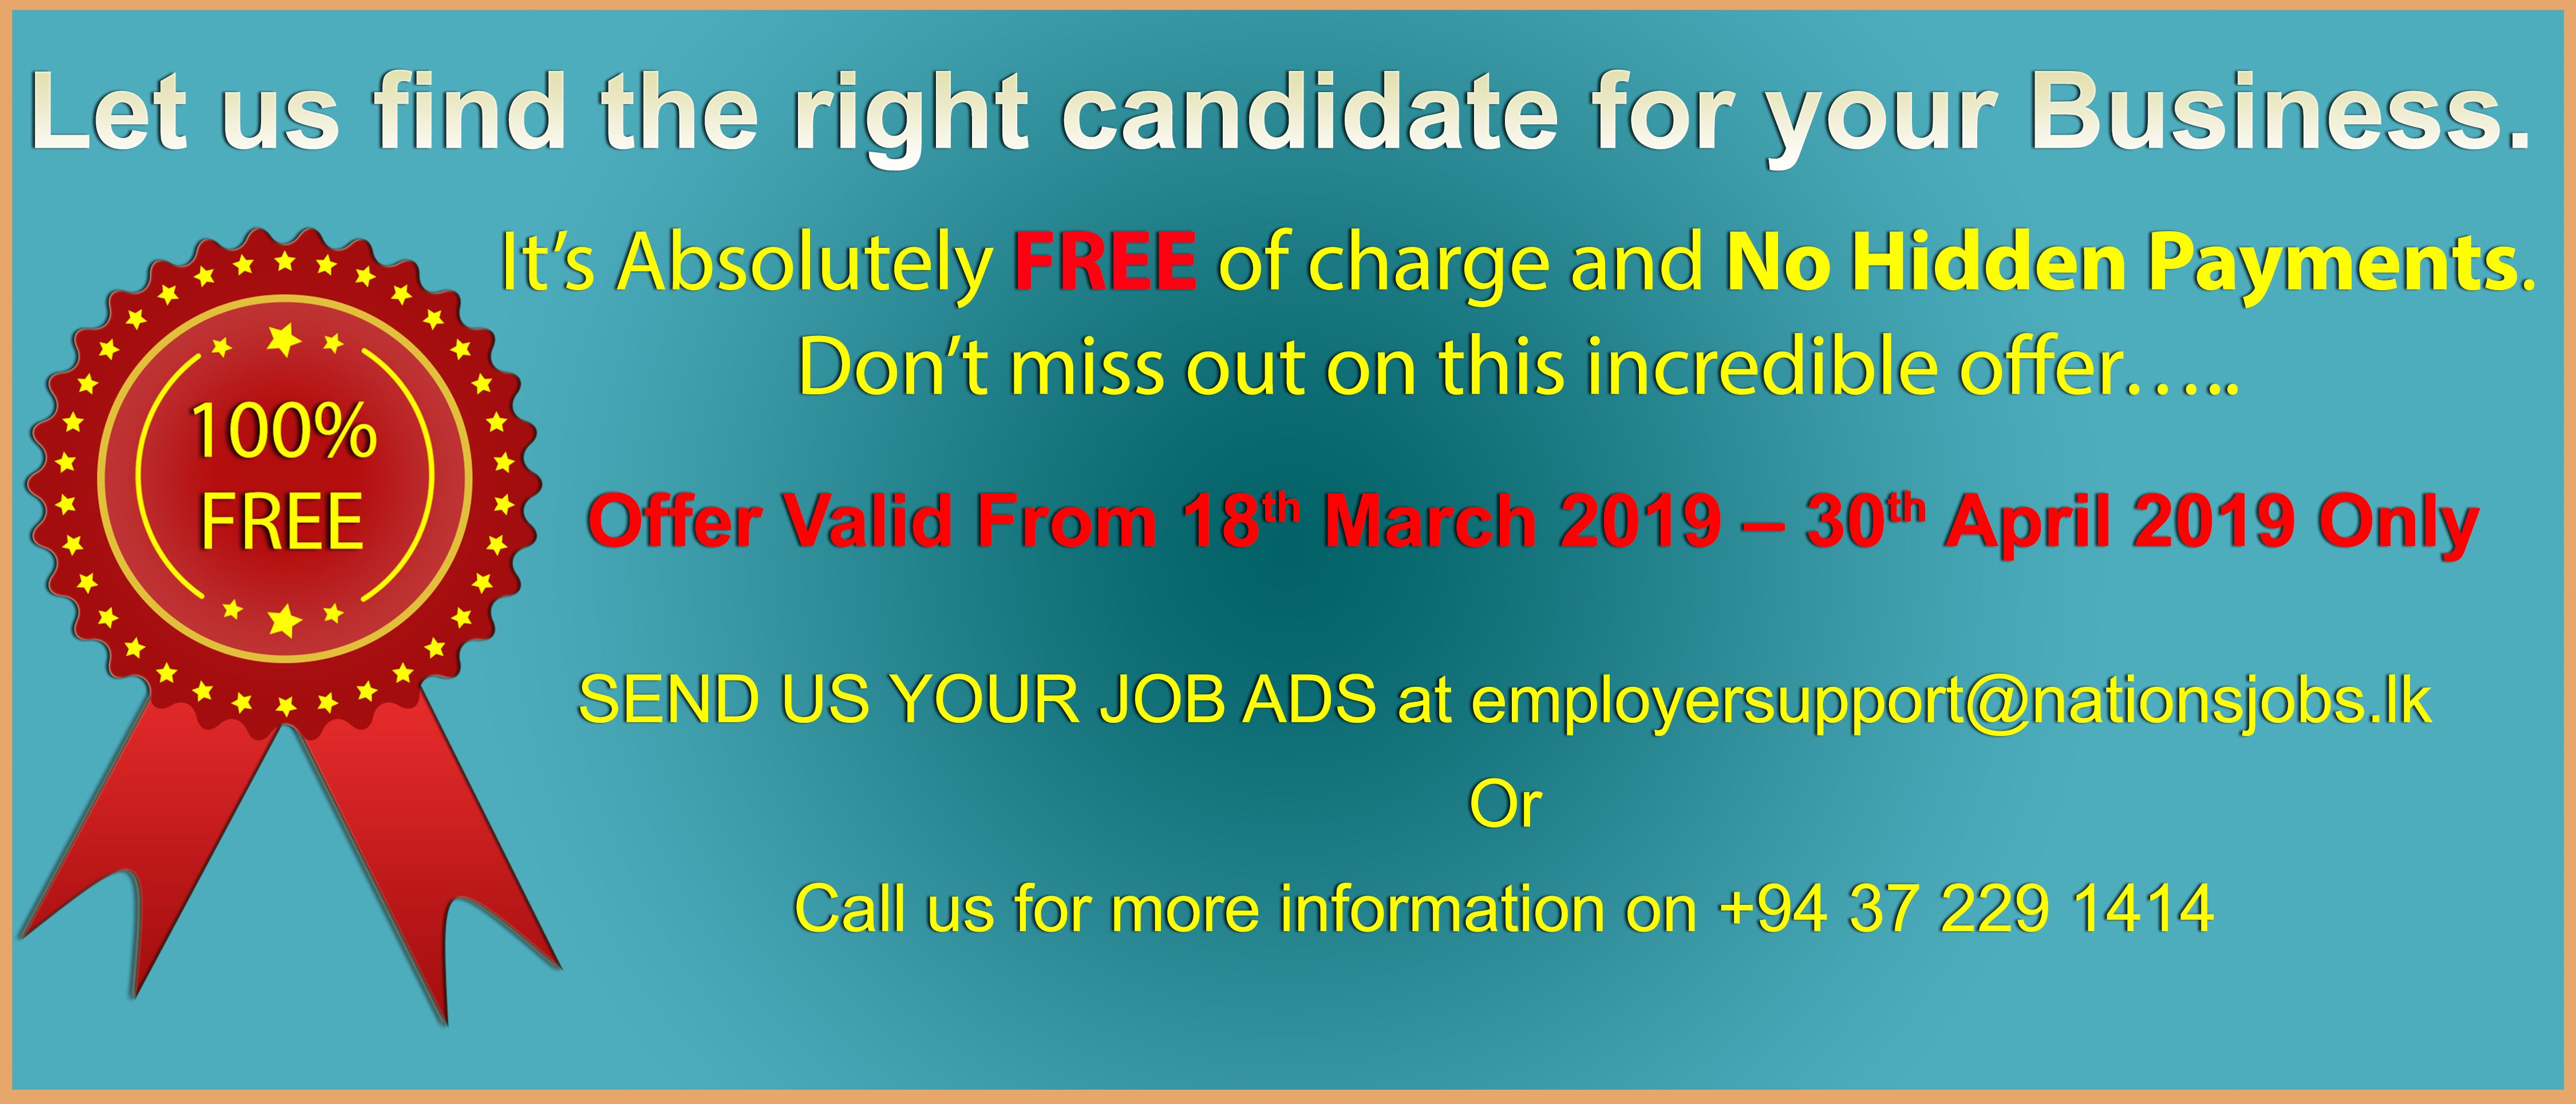 Let Us Find Right Candidate For Your Business Visit Us At Www